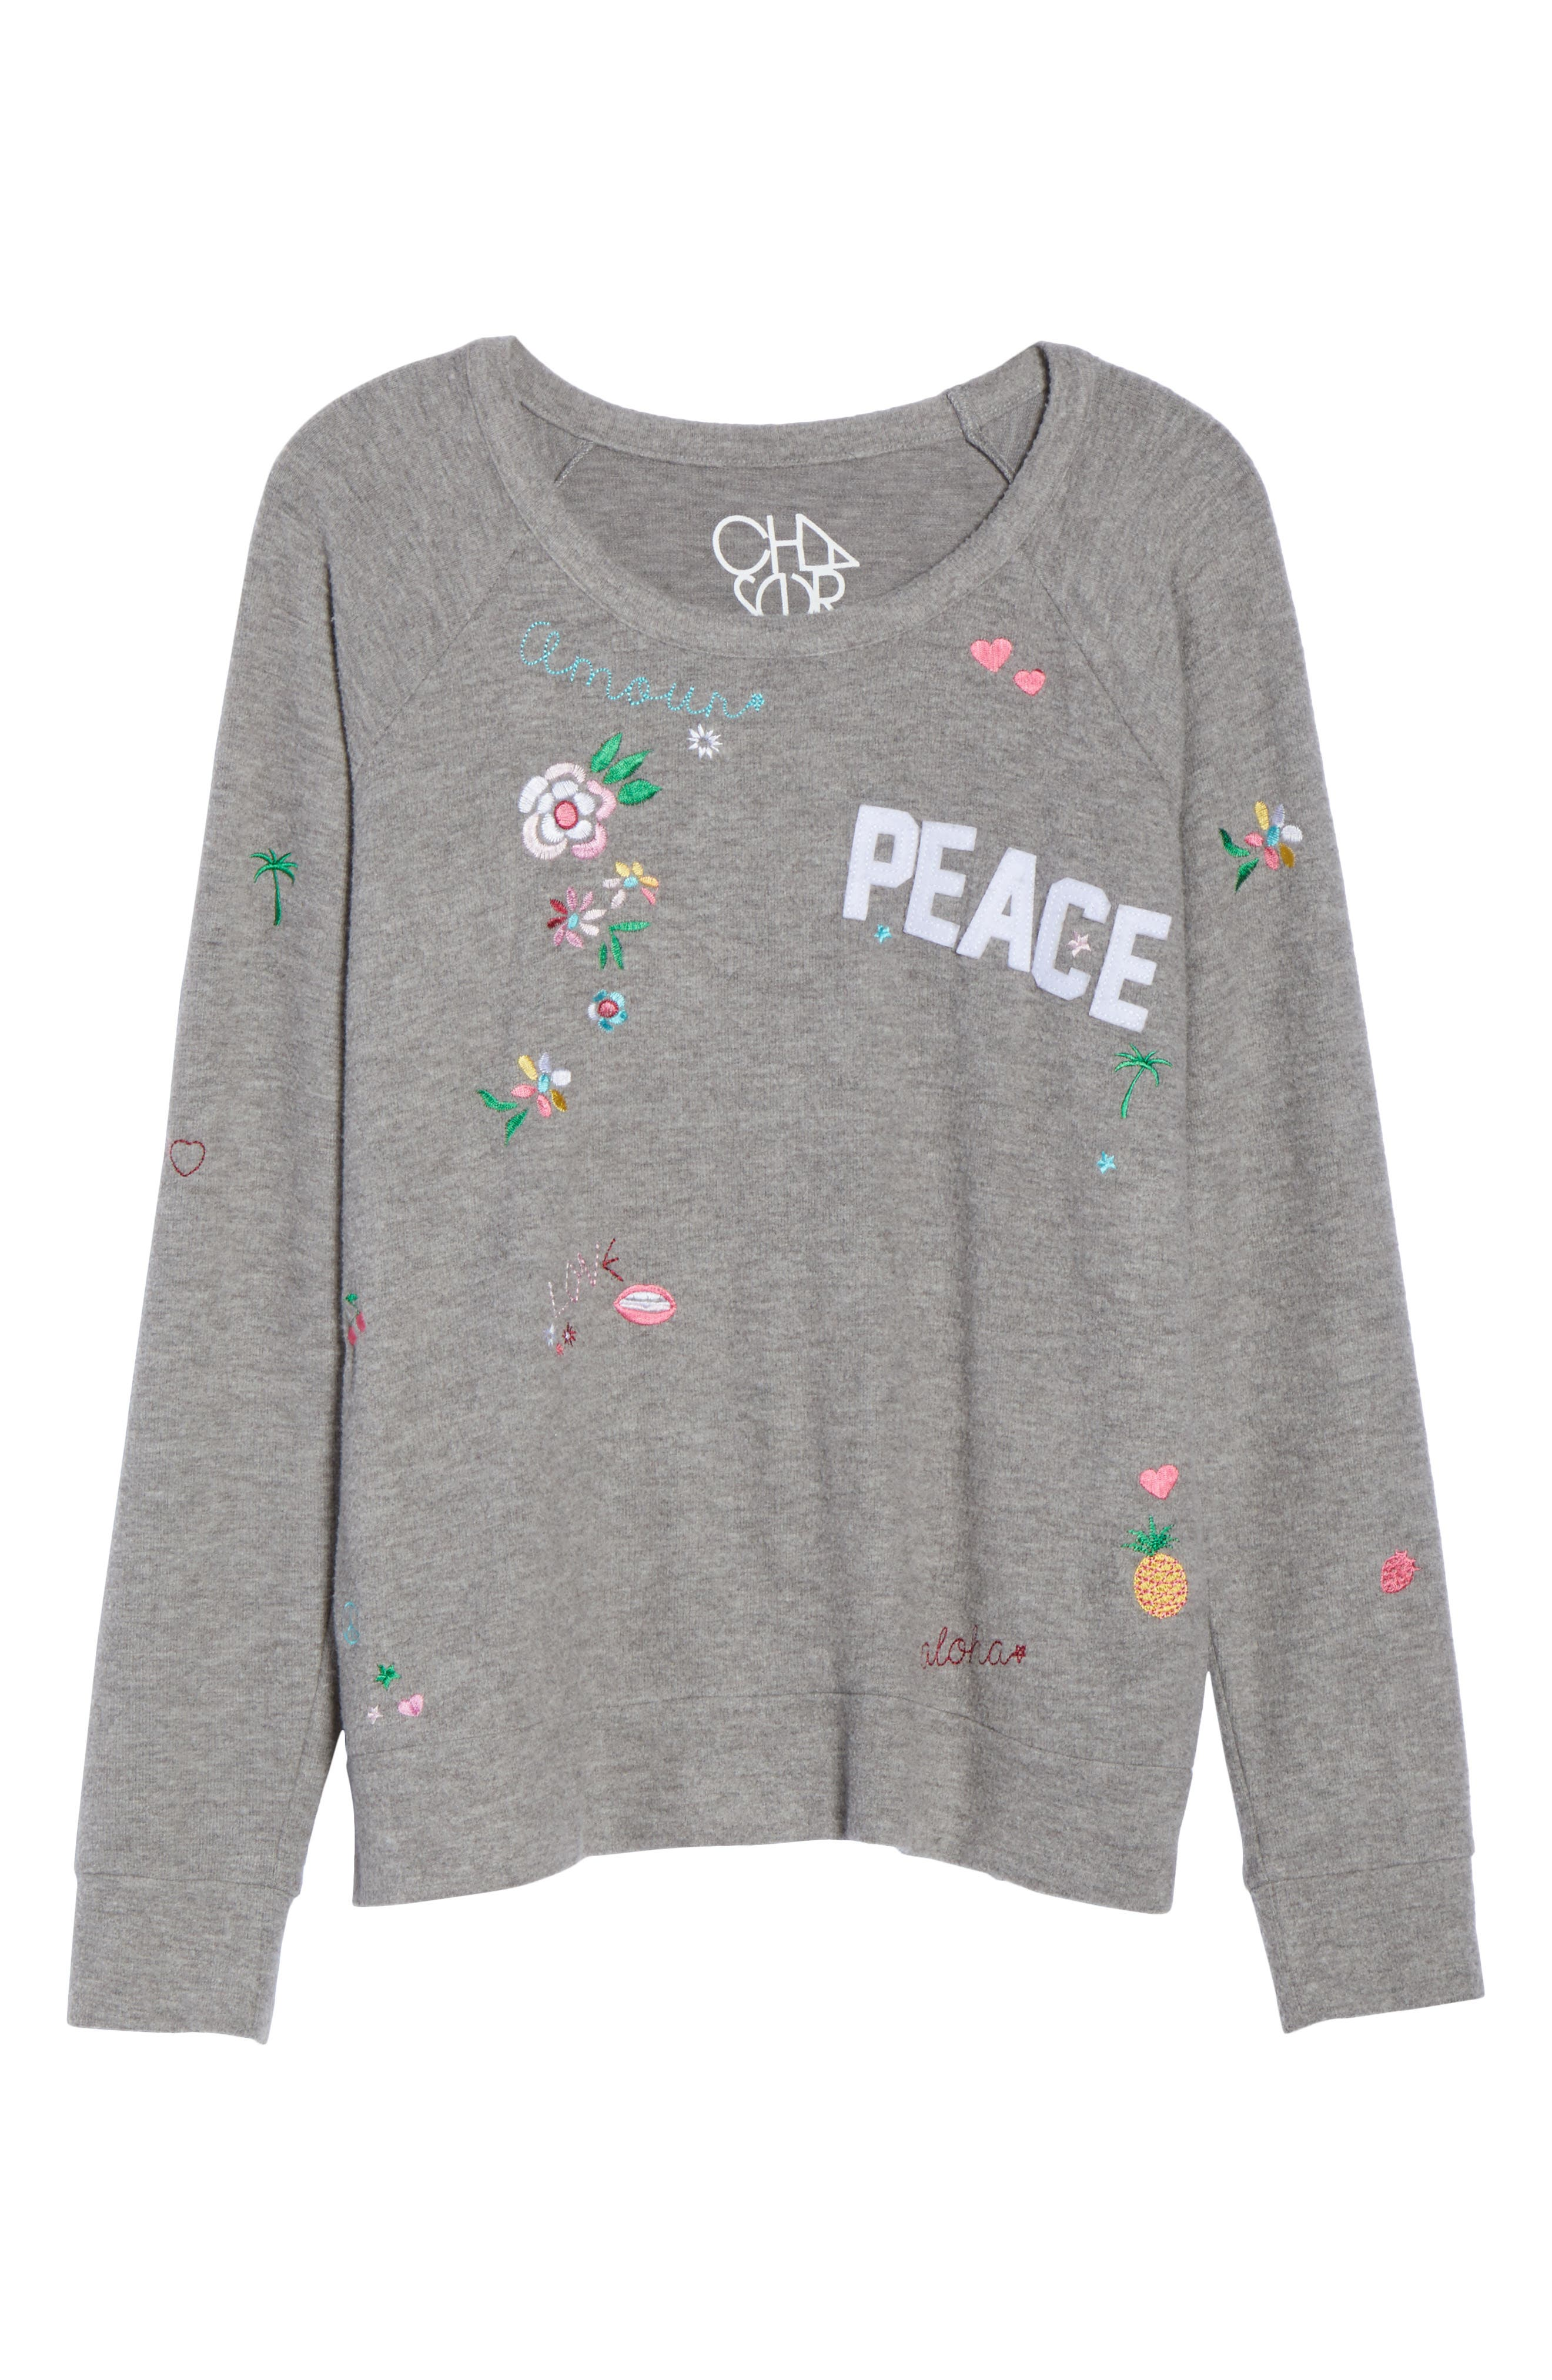 Patched Up Sweatshirt,                             Alternate thumbnail 7, color,                             Heather Grey